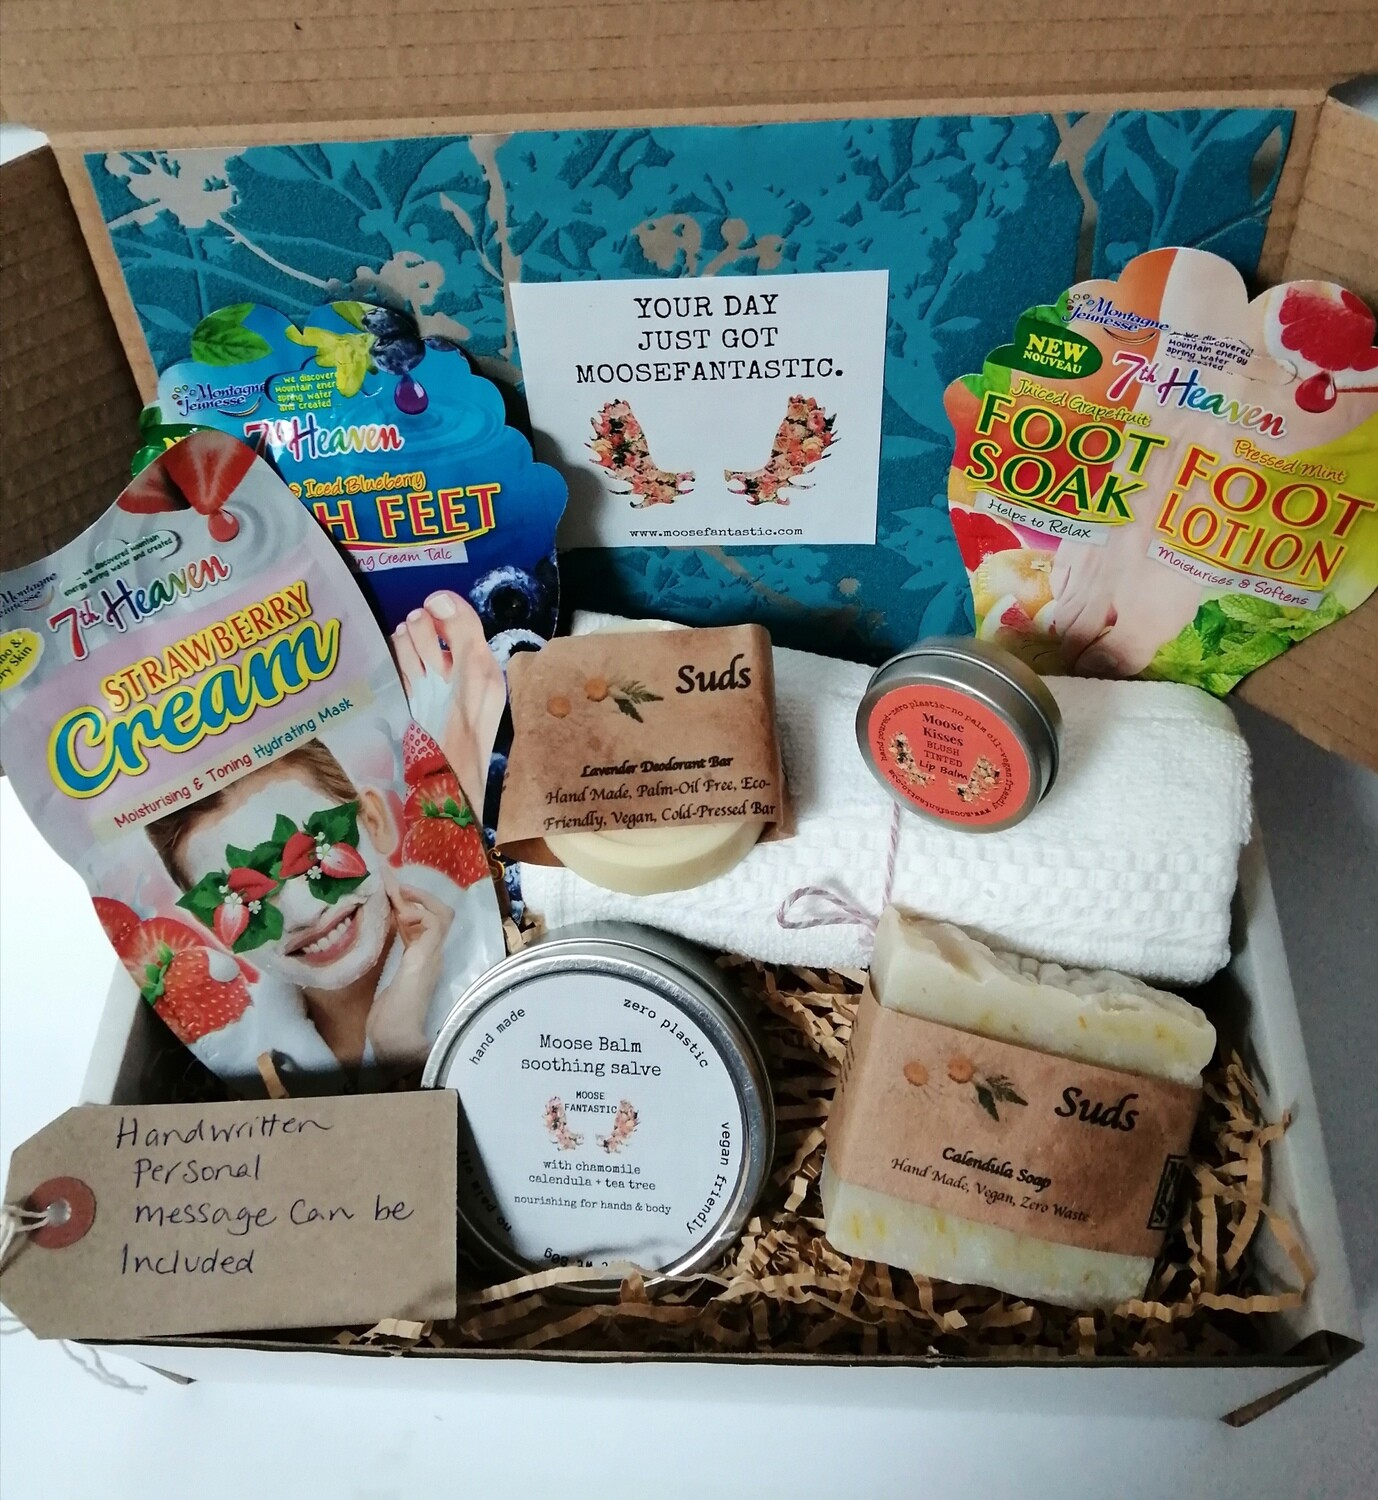 Soul Sister wellness gift box for her